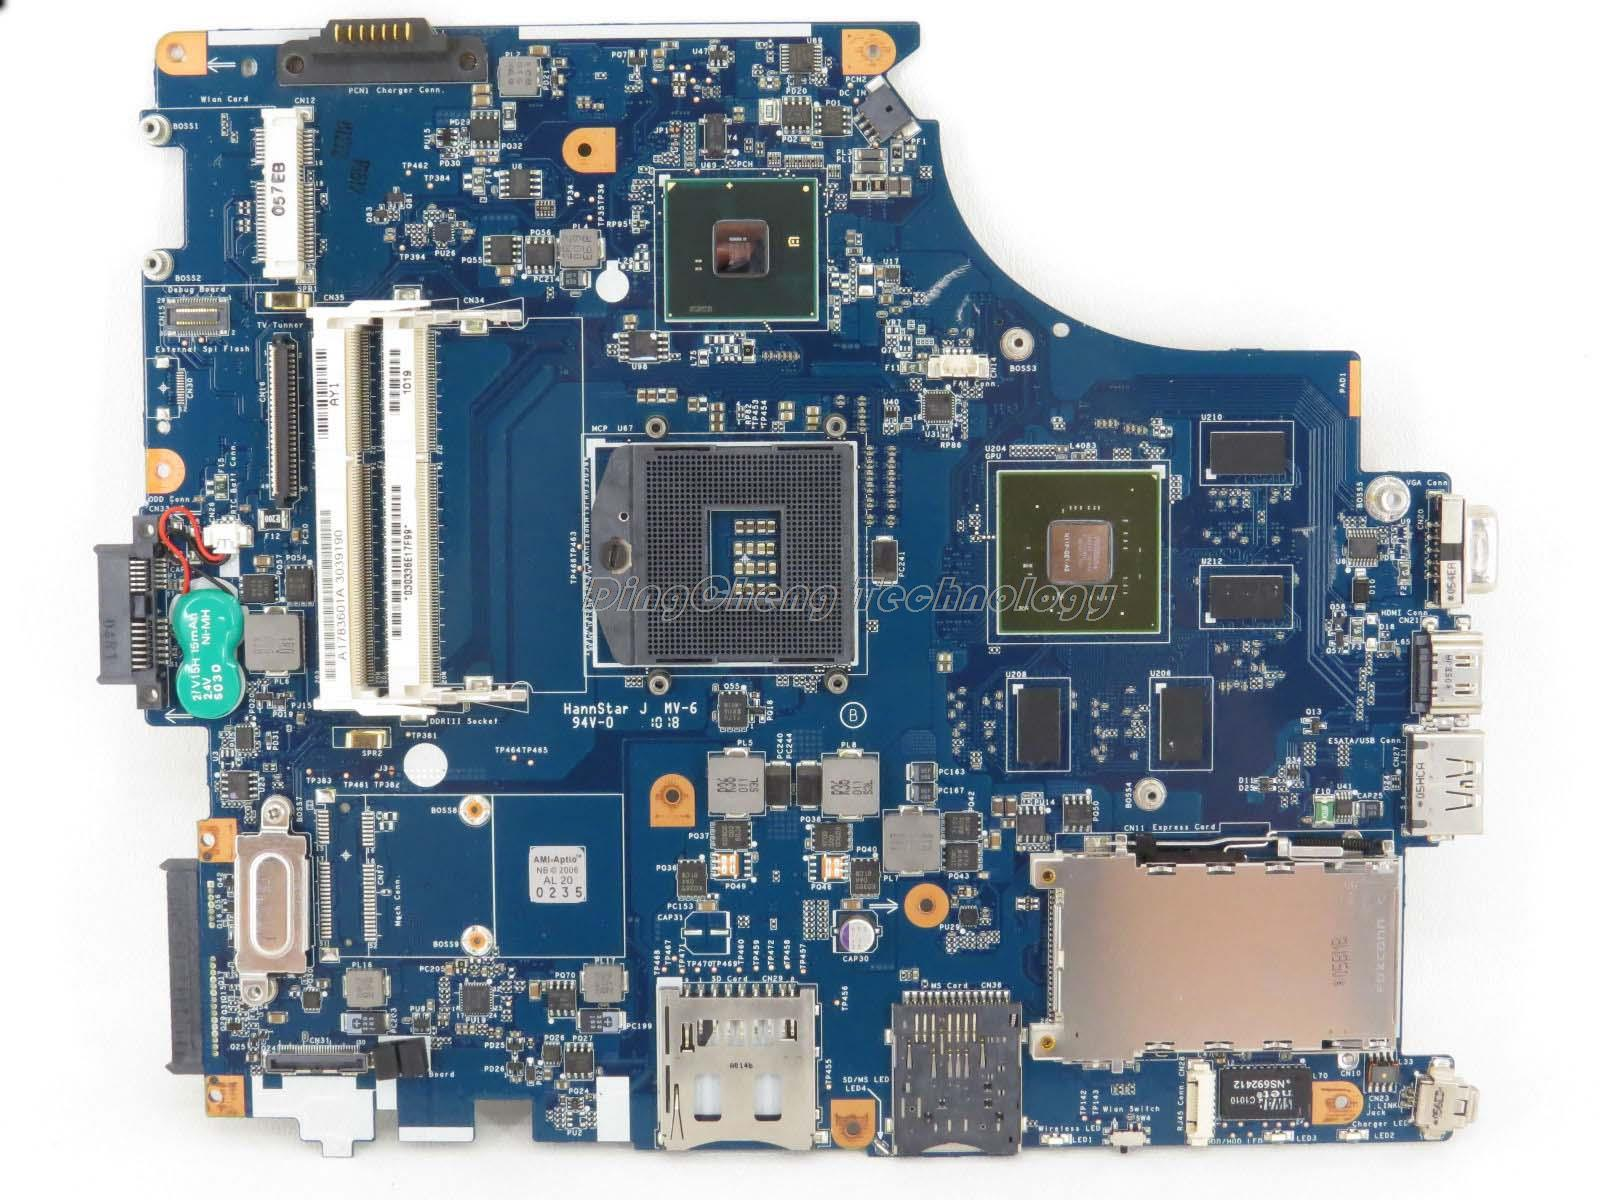 SHELI MBX 215 laptop Motherboard For Sony M931 MBX-215 1P-0104500-8011 A1783601A REV 1.1 non-integrated graphics card mbx 265 for sony svt13 motherboard with cpu i3 3217u 2gb memory pc motherboard professional wholesale 100